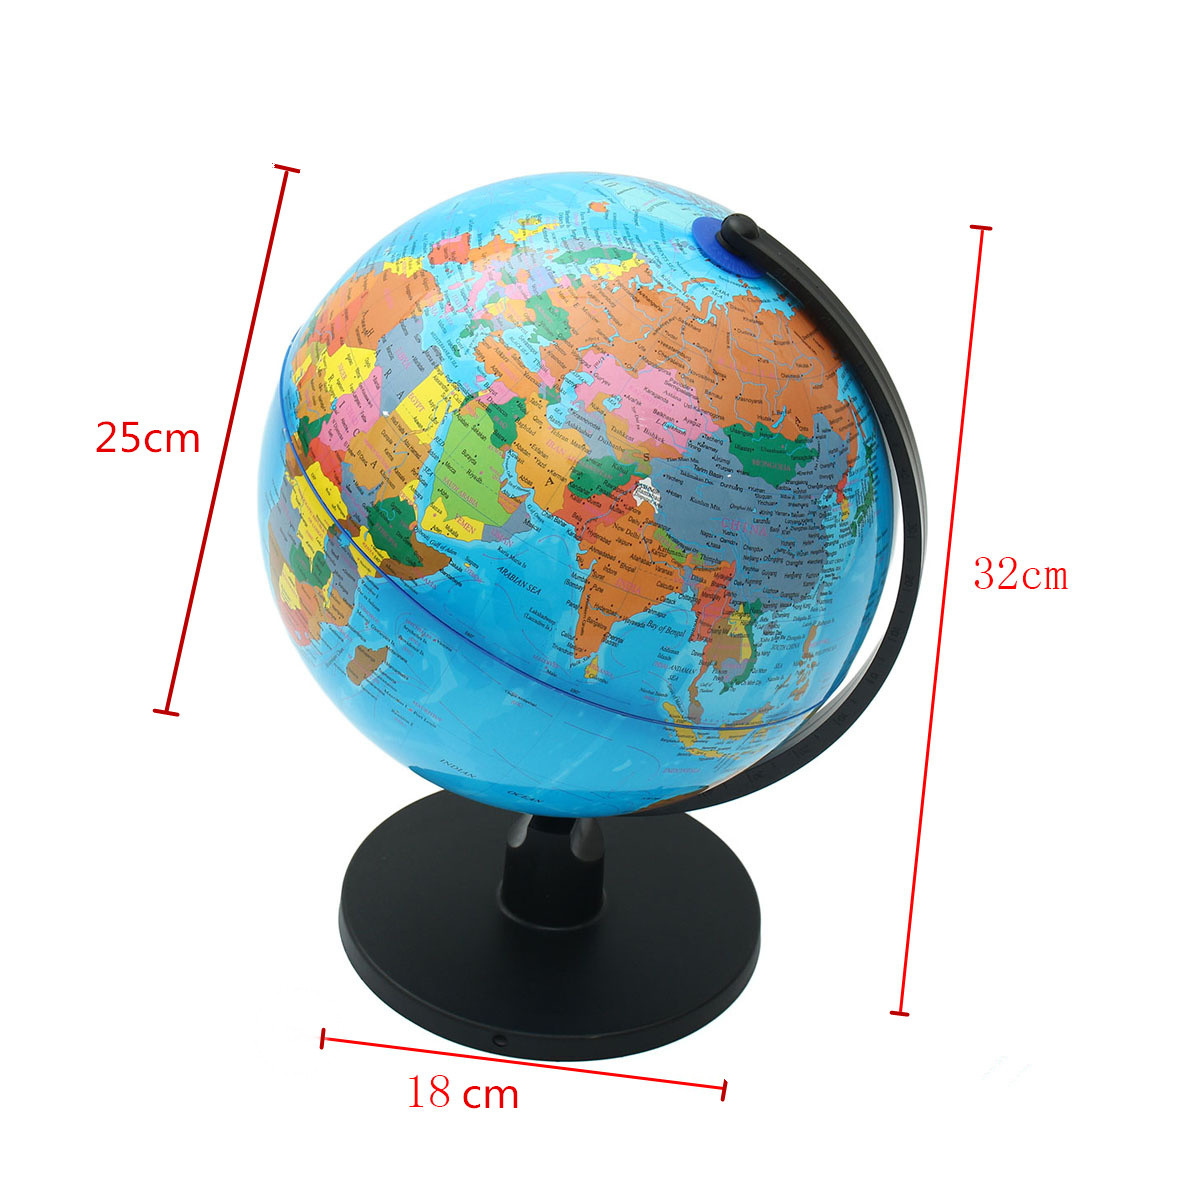 25cm english world globe map with stand educational earth geography 25cm english world globe map with stand educational earth geography study tool home office desktop decorative globe ball gifts in figurines miniatures gumiabroncs Image collections